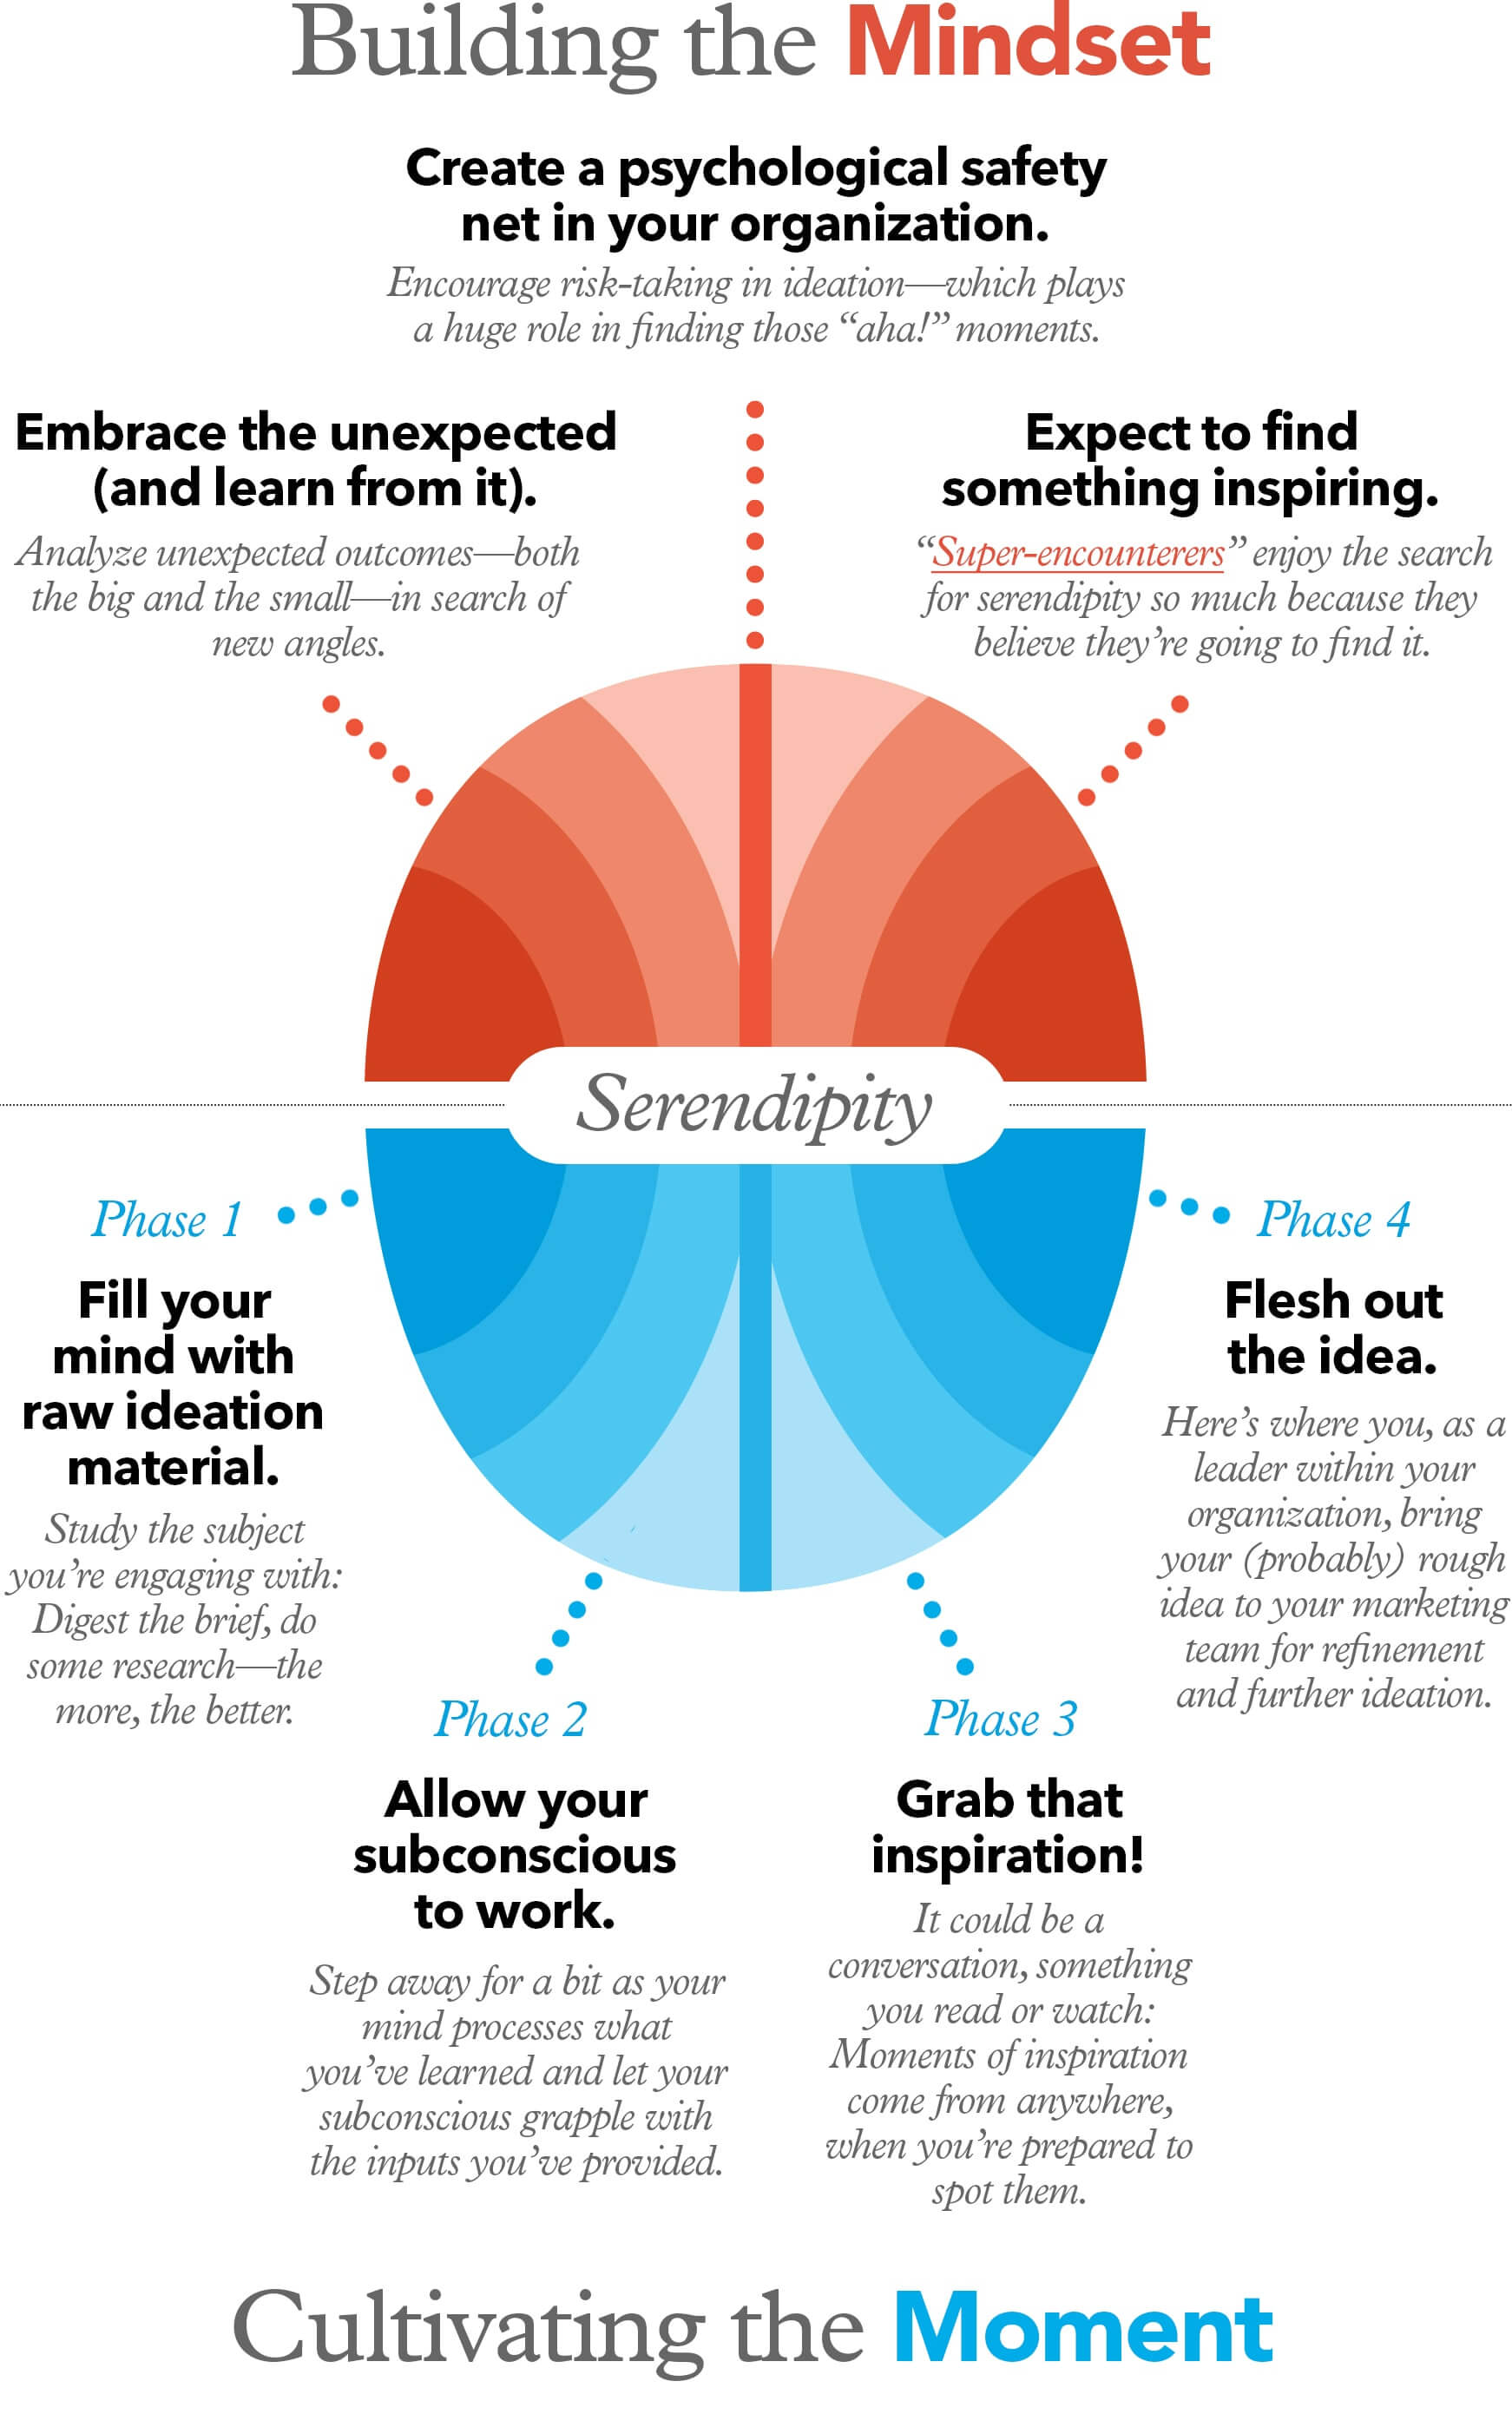 building the mindset infographic